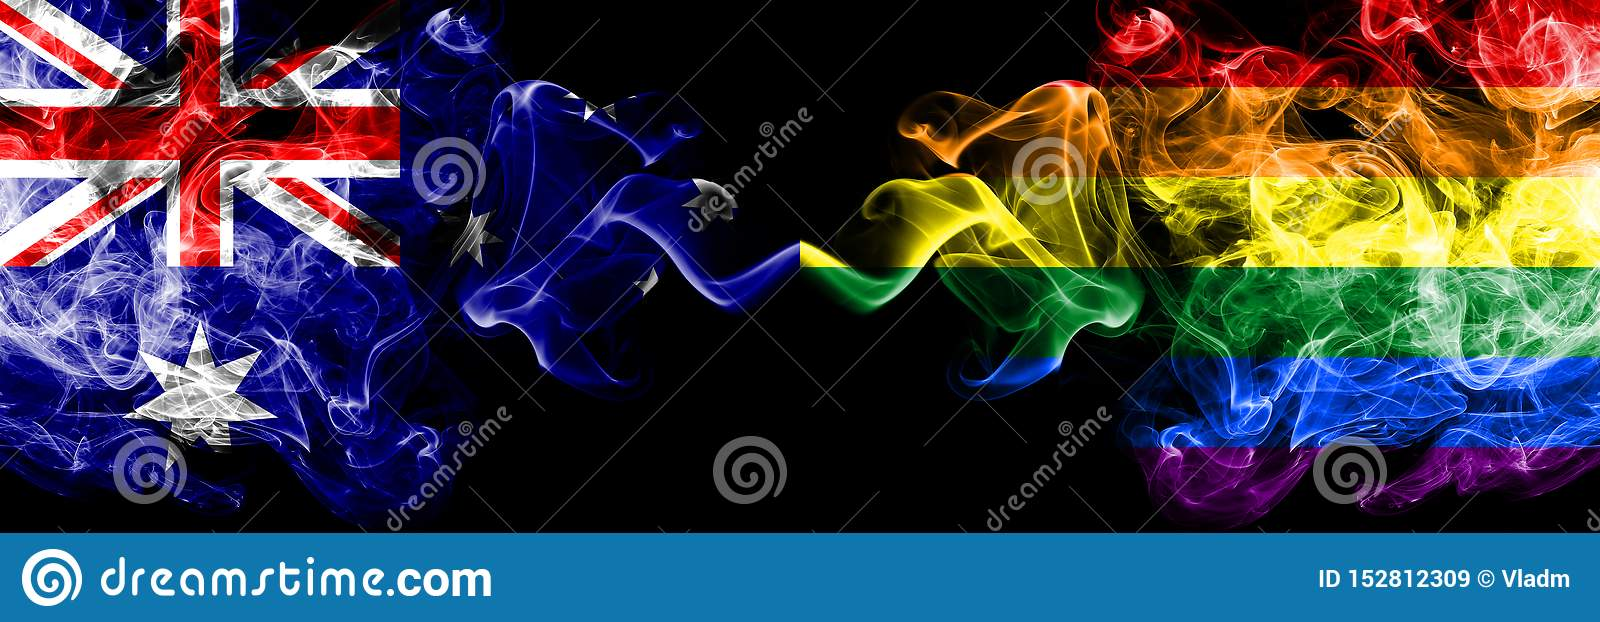 Australia vs Gay pride smoky mystic flags placed side by side. Thick colored silky smokes combination of national flags of